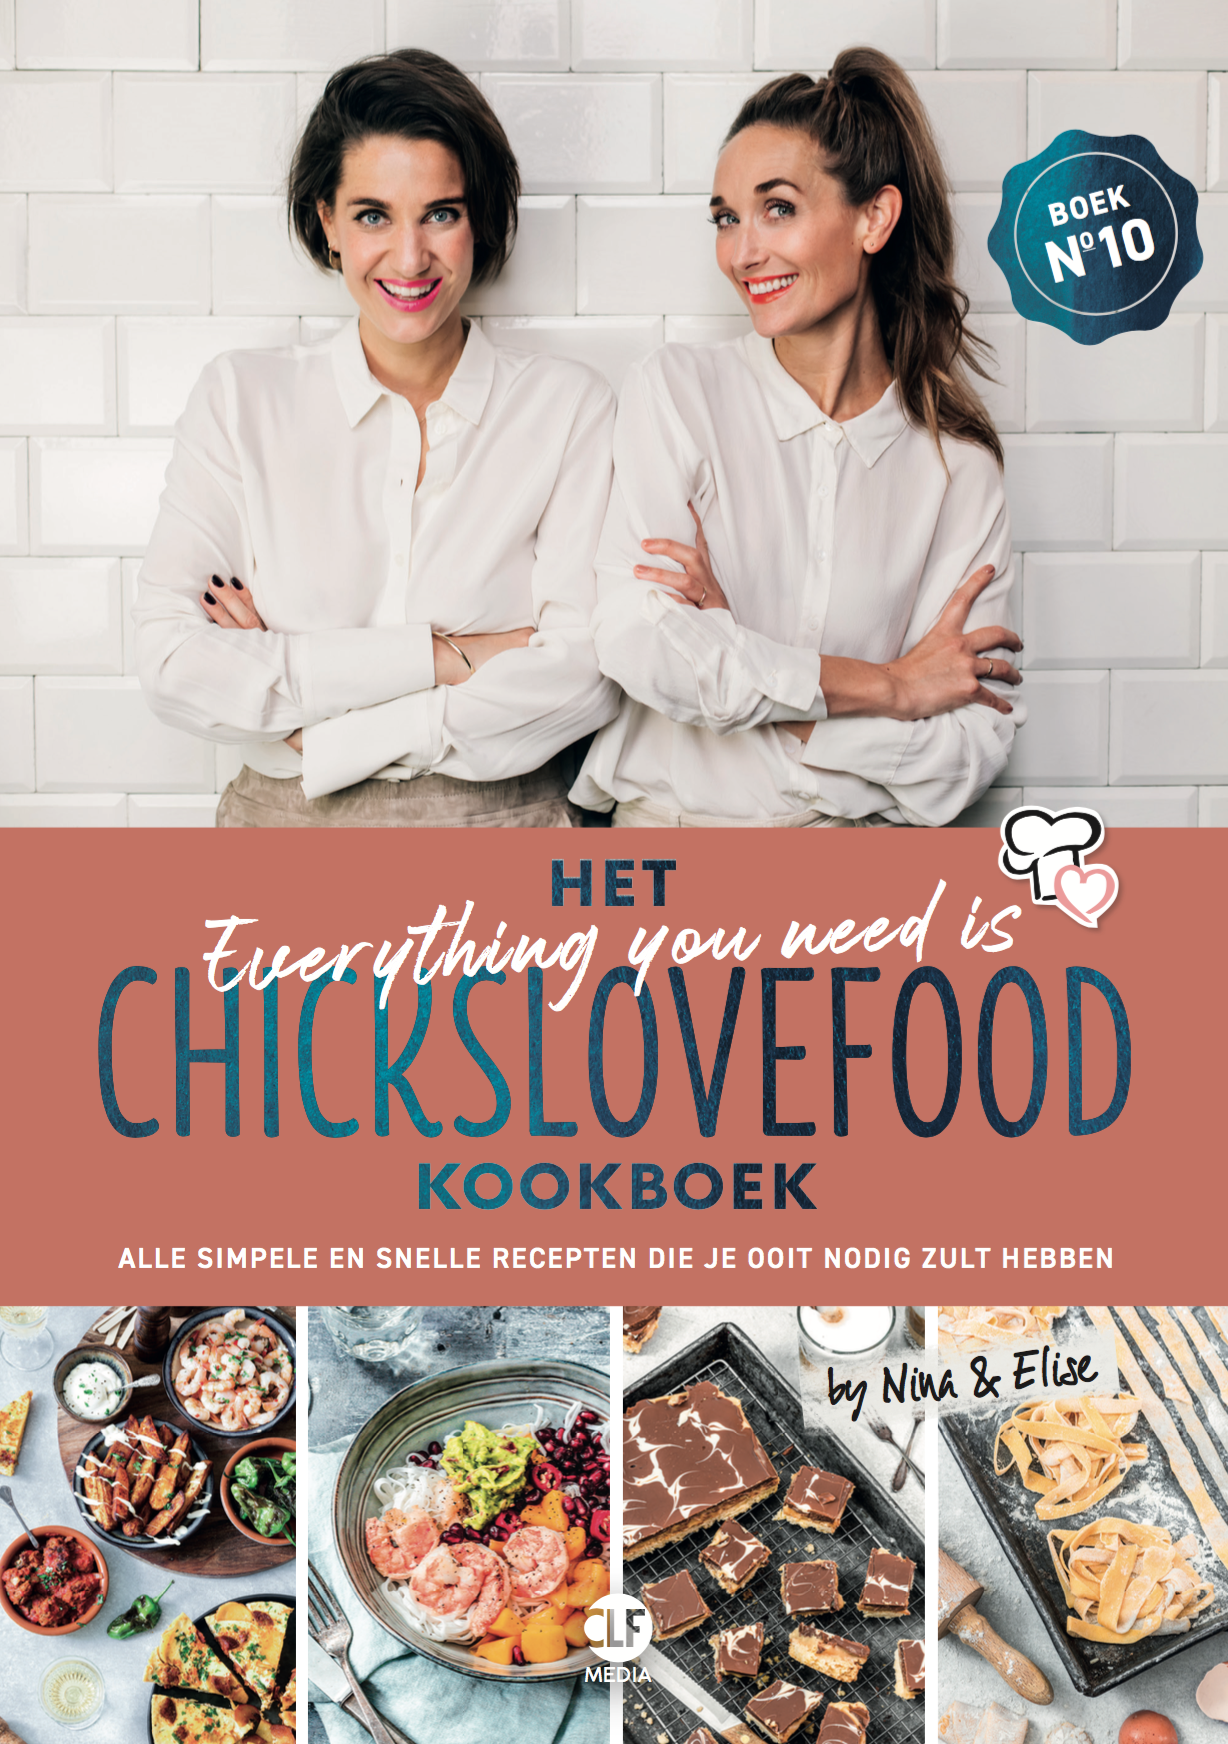 Everything You Need Is Chickslovefood - boekenflits